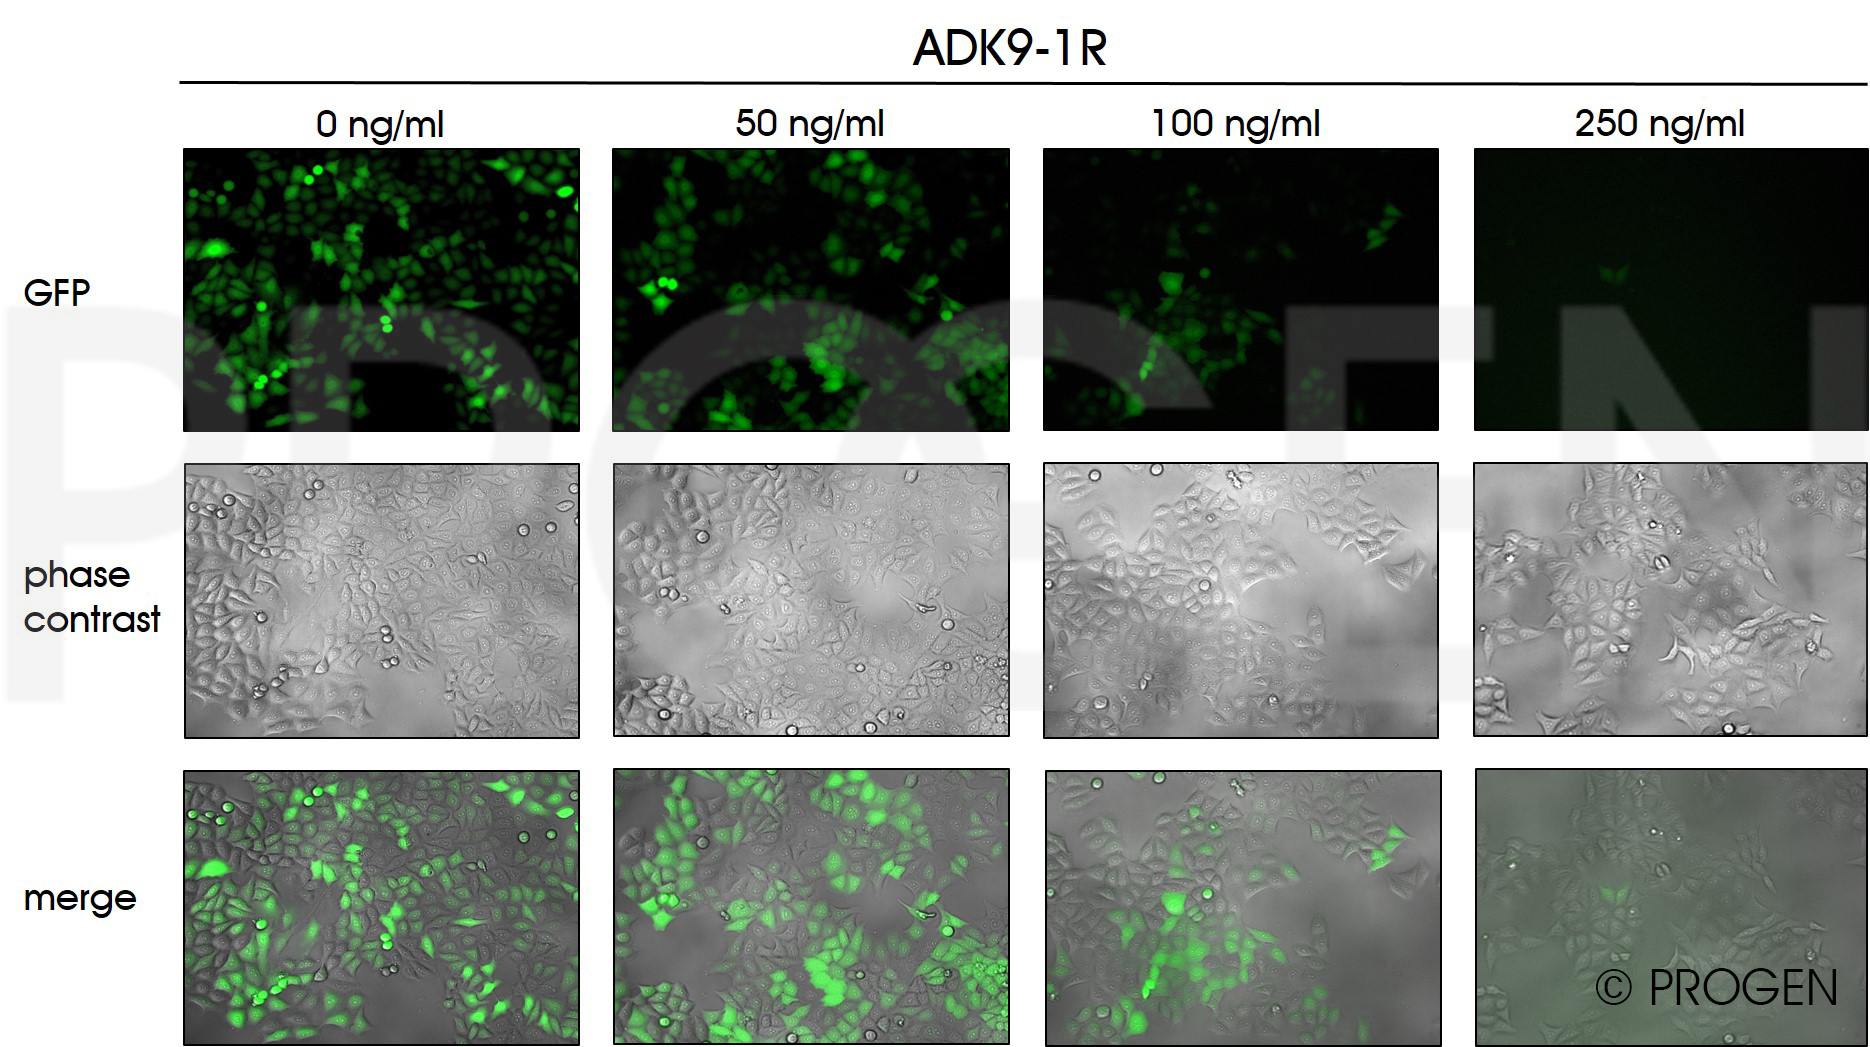 anti-AAV9 (intact particle) mouse recombinant, ADK9-1R, lyophilized, purified